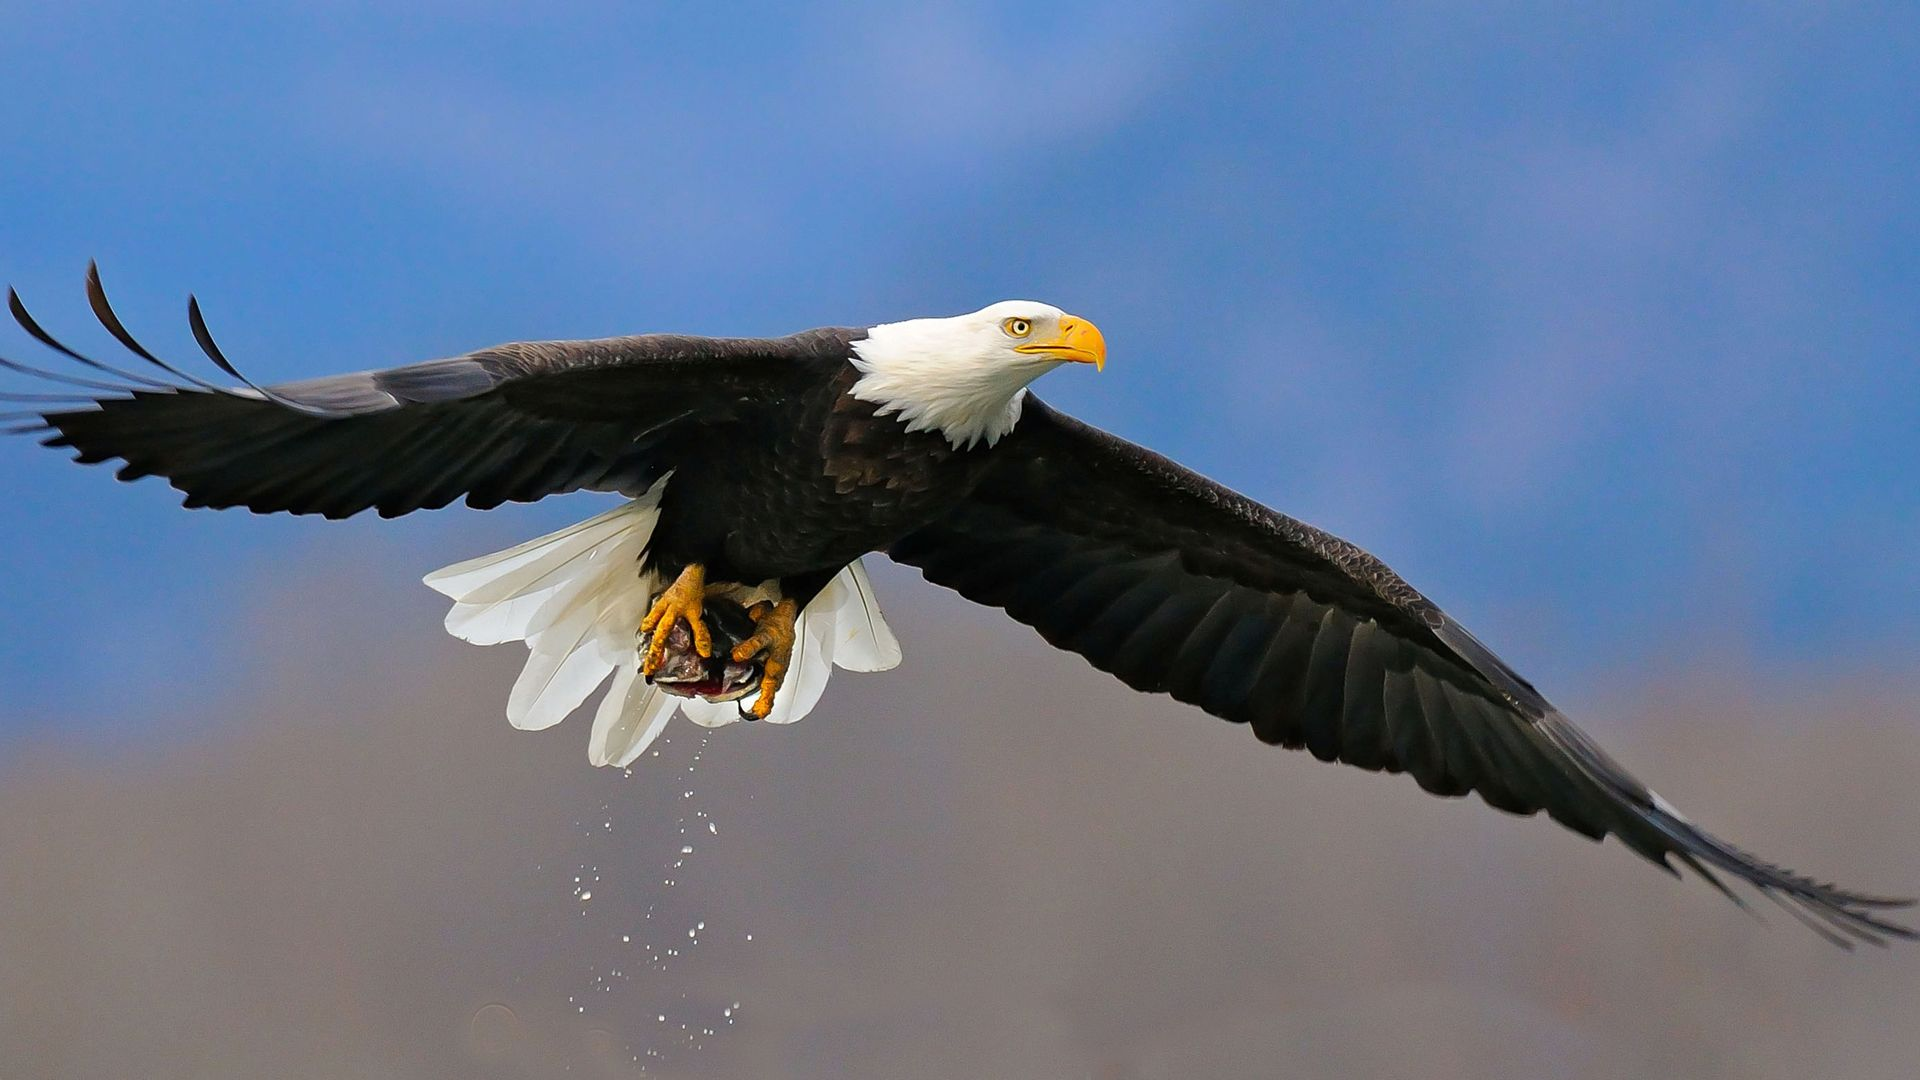 The Wallpapers Of Eagle In Flight